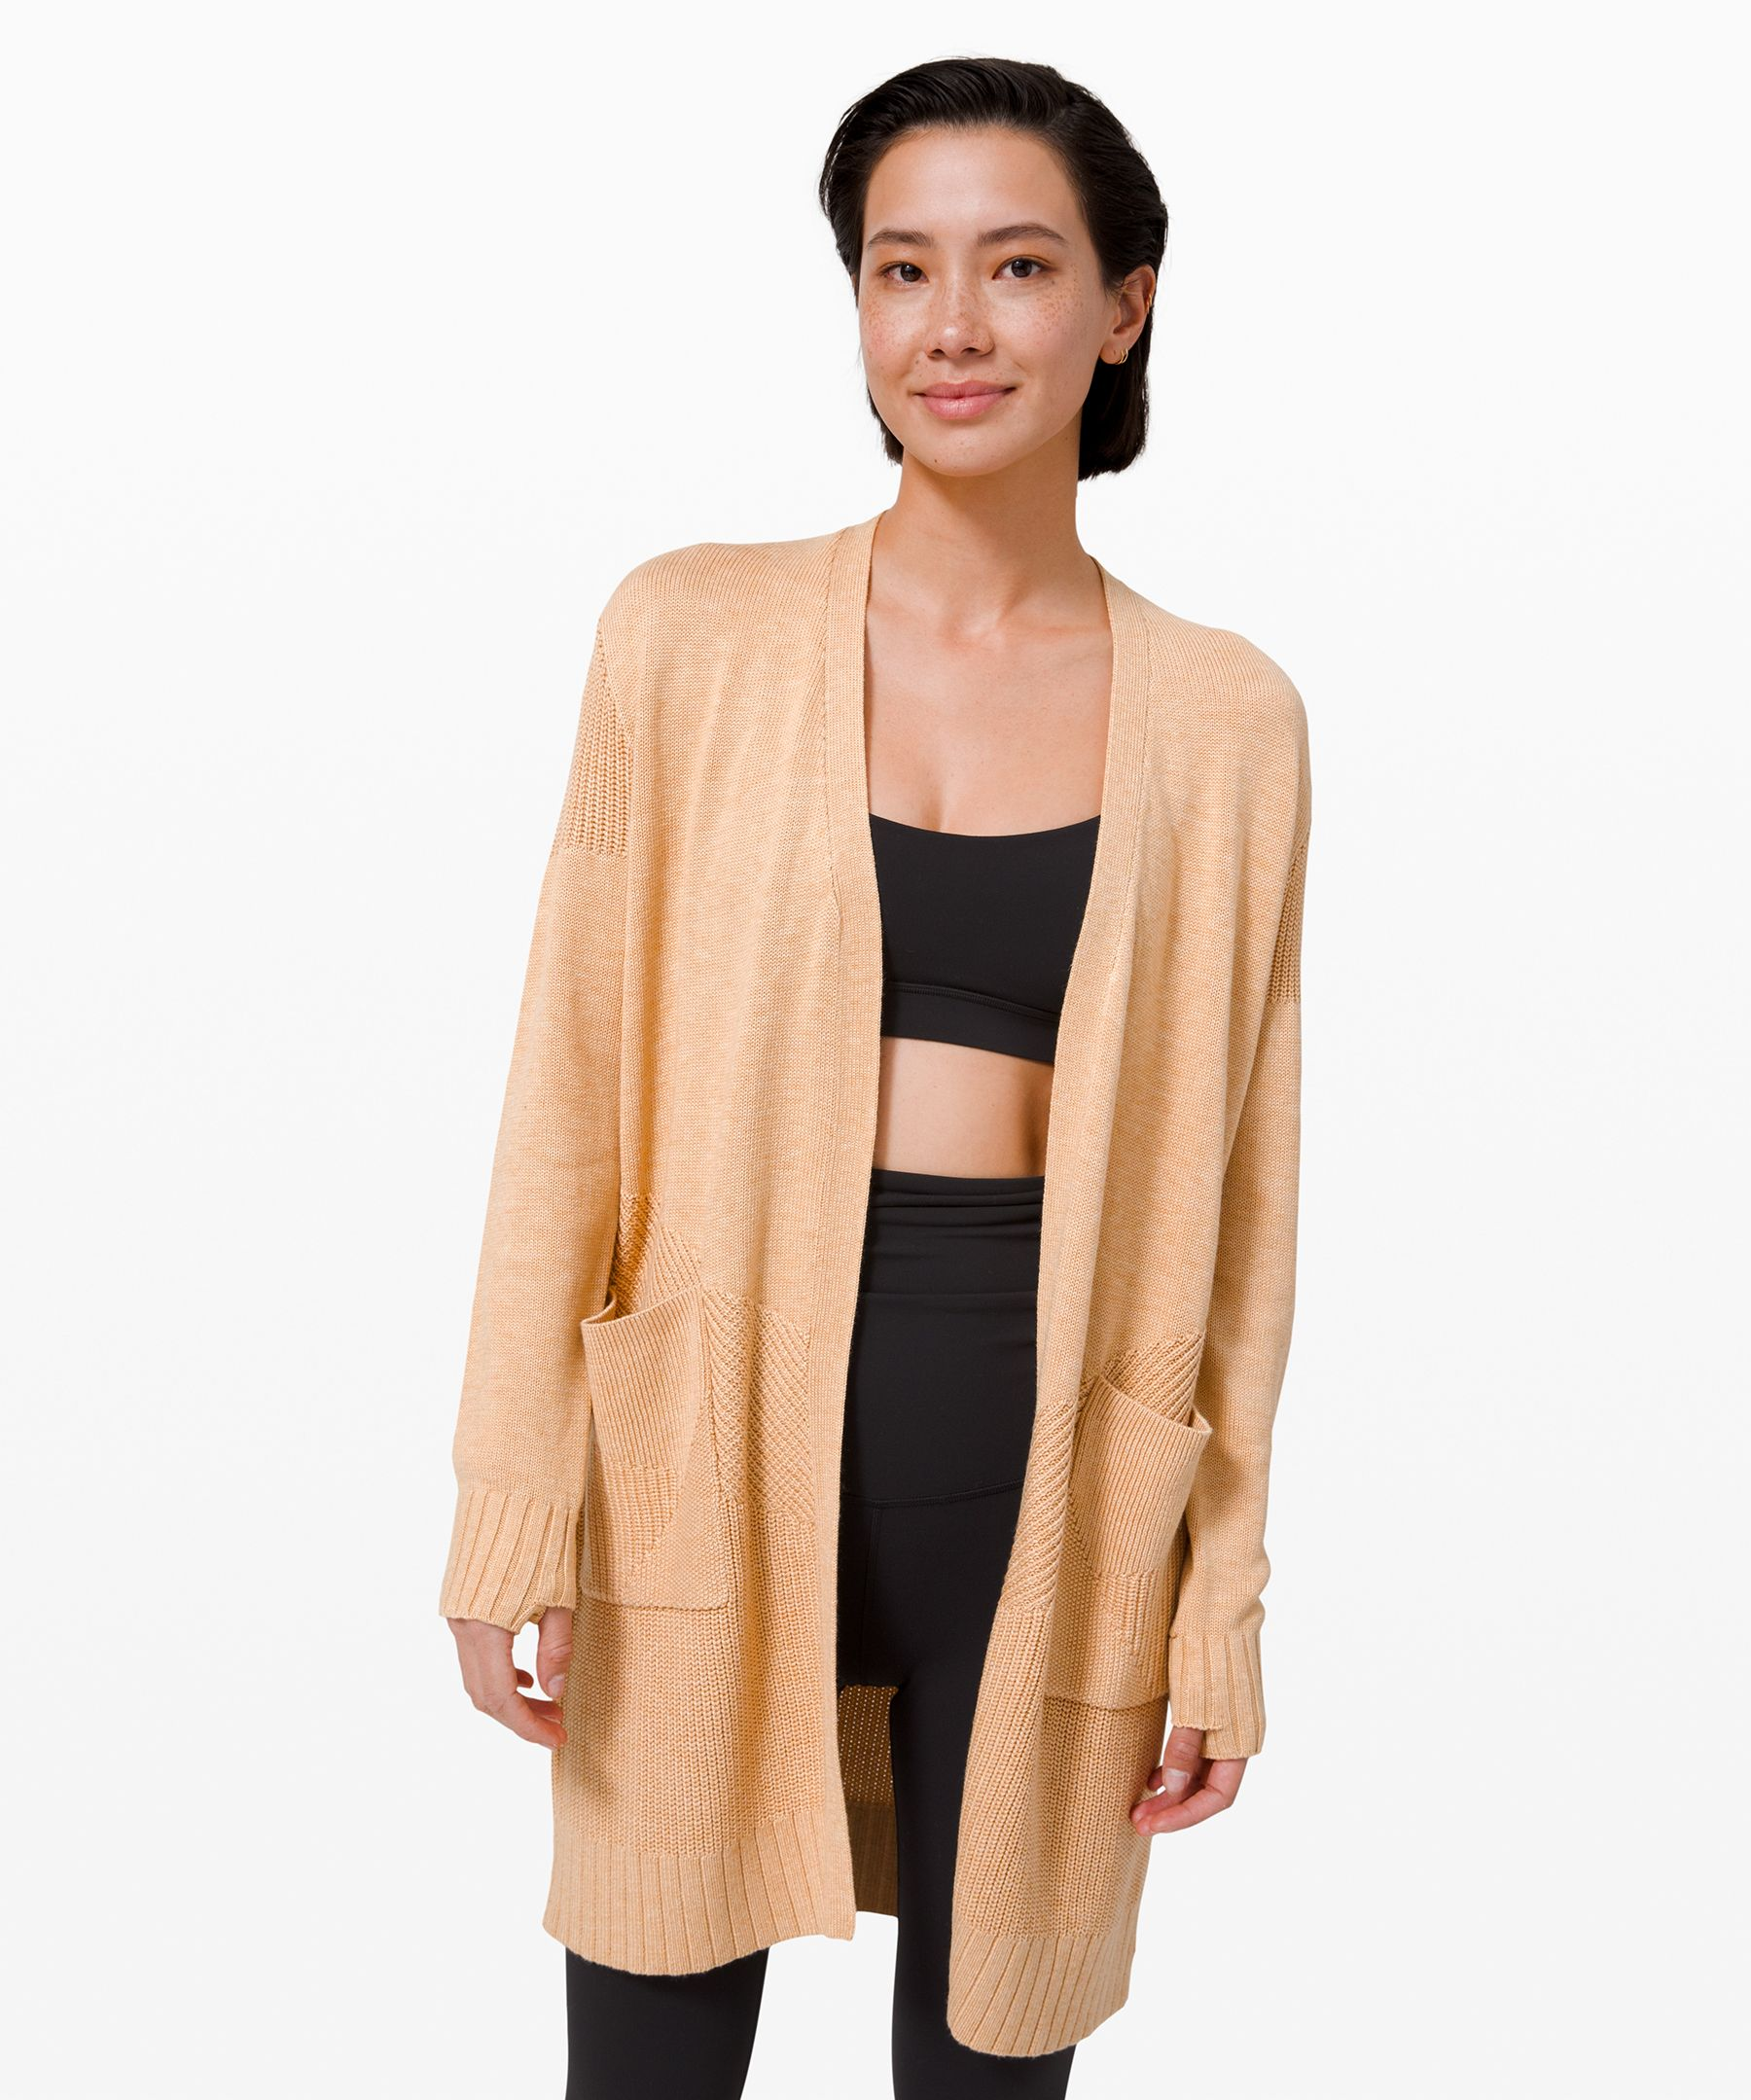 Hang on to that relaxing  post-yoga feeling of comfort  long after leaving the studio  in this long, textured wrap.